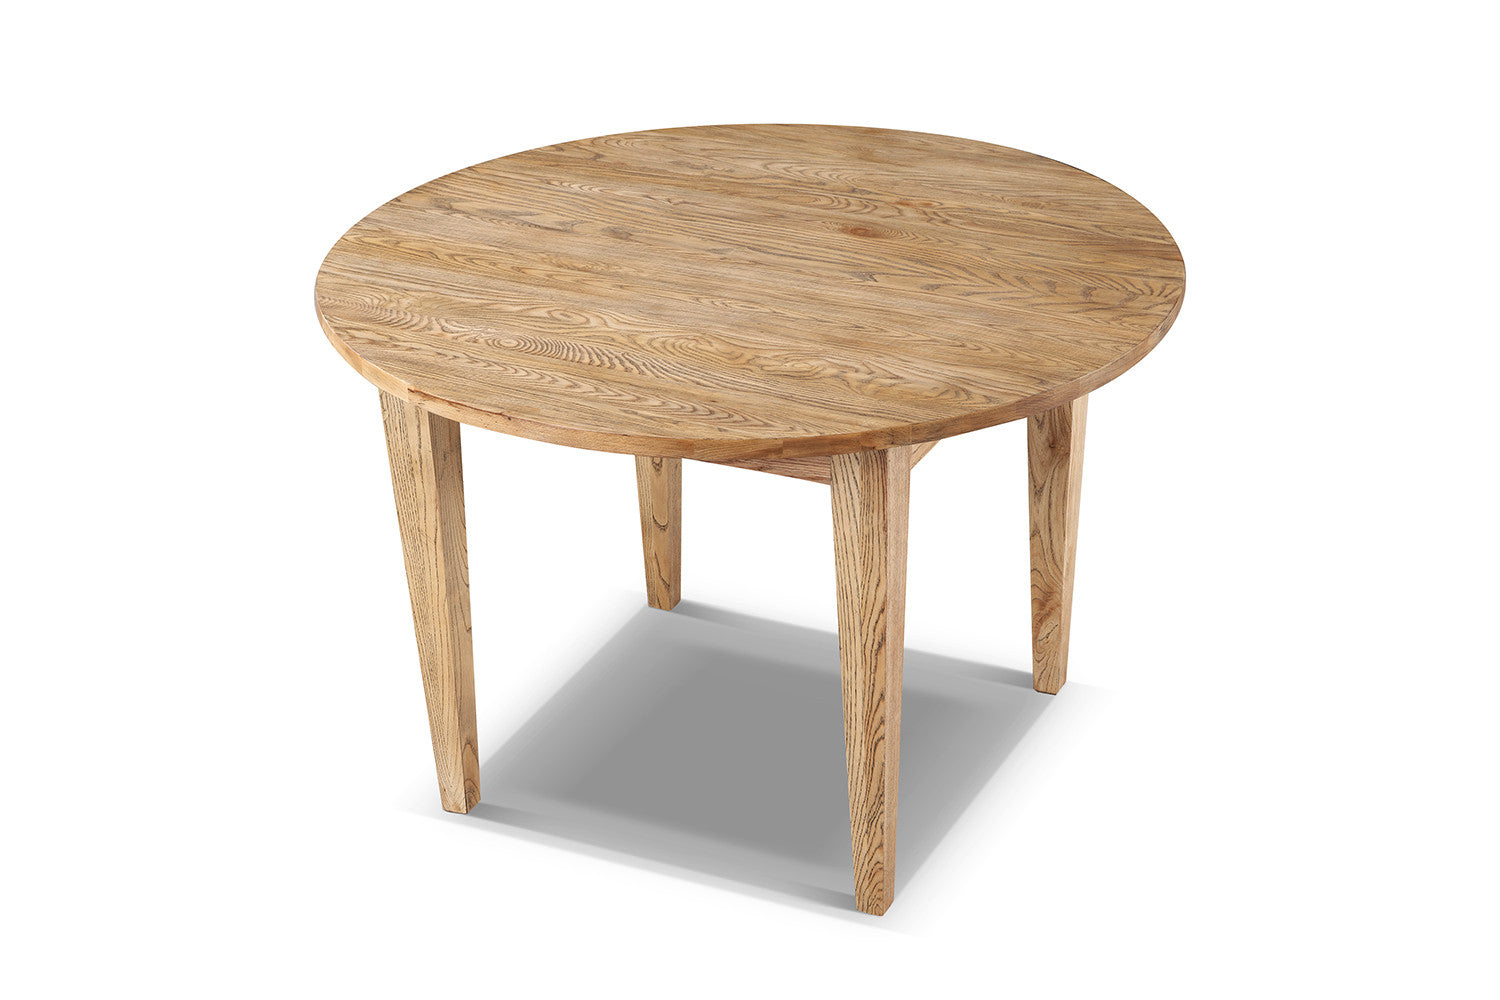 Table de cuisine cottage ronde en bois rose moore - Table en bois ronde ...